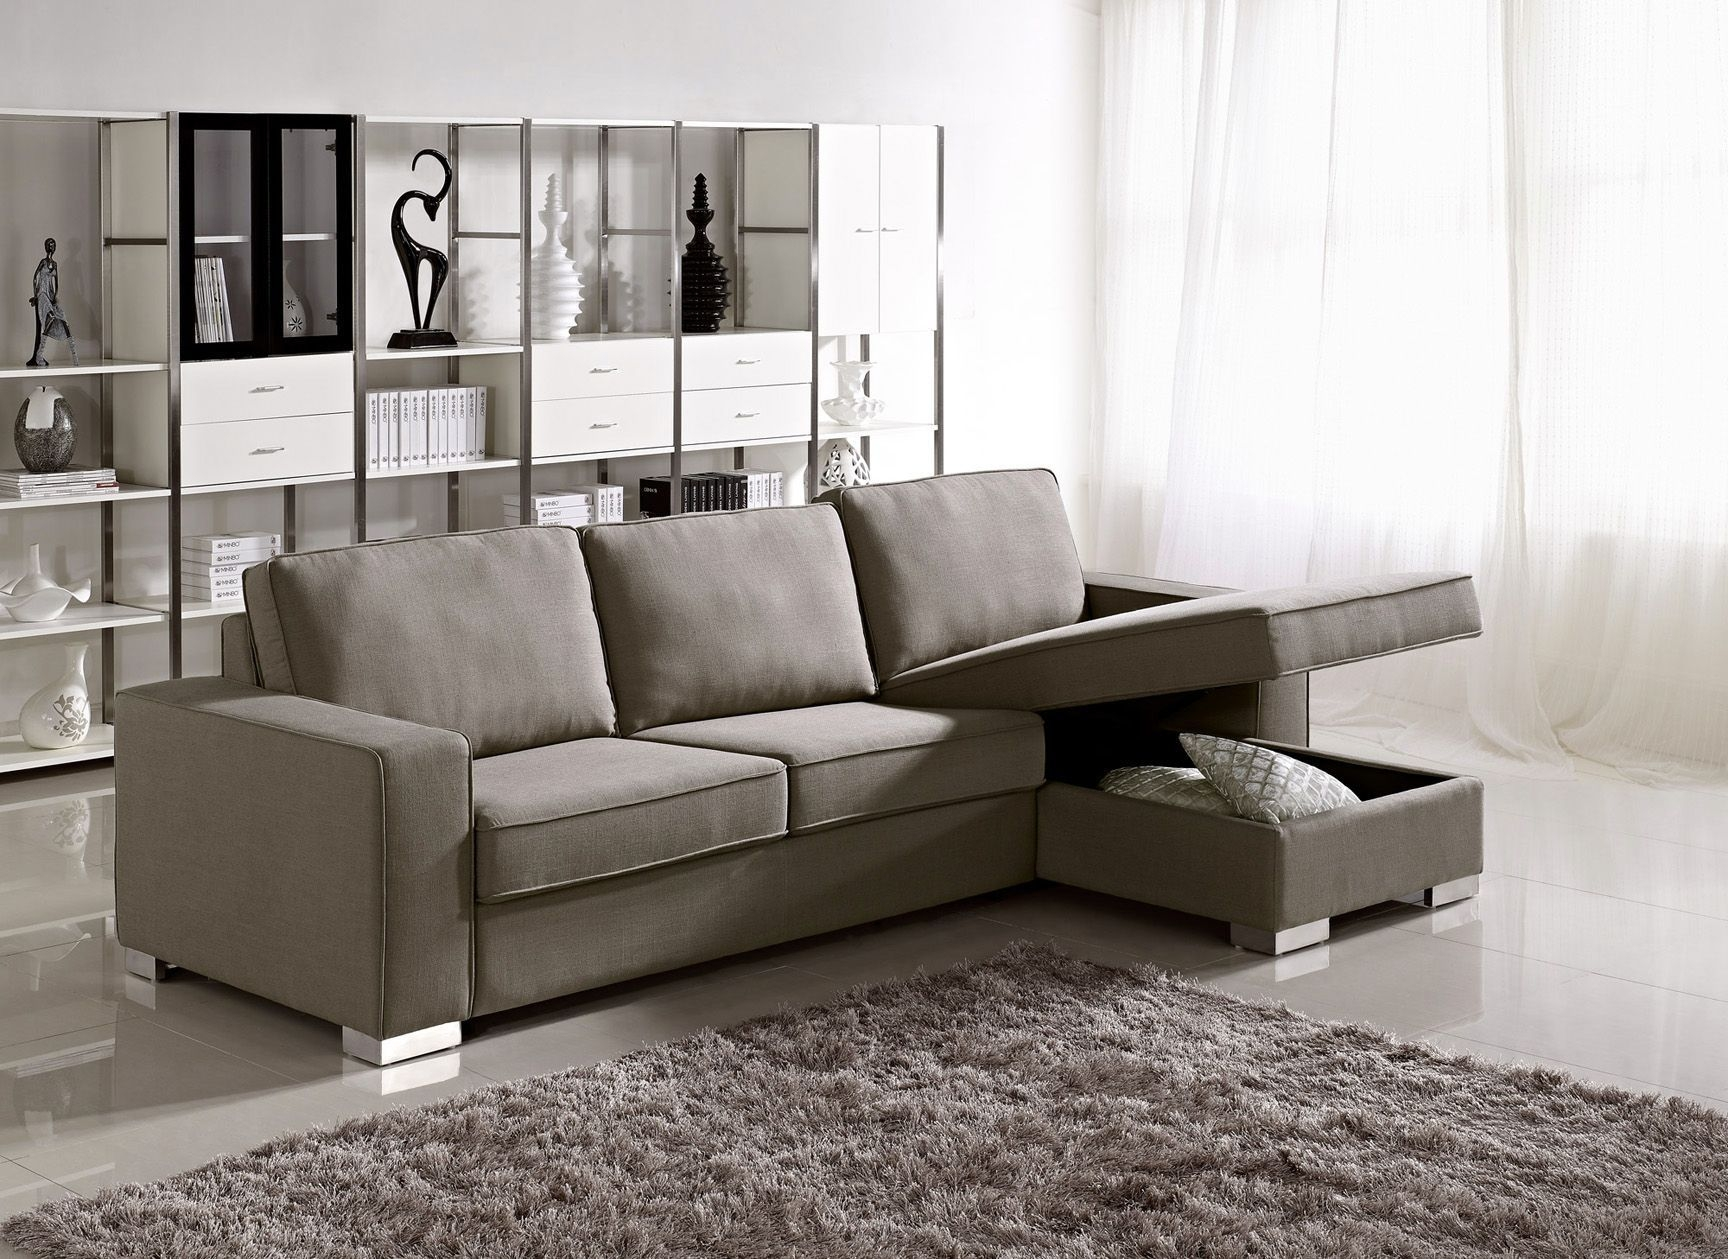 Best Apartment Sectional Sofa Images Daclahepco Daclahepco Inside Apartment Sofa Sectional (Image 4 of 15)